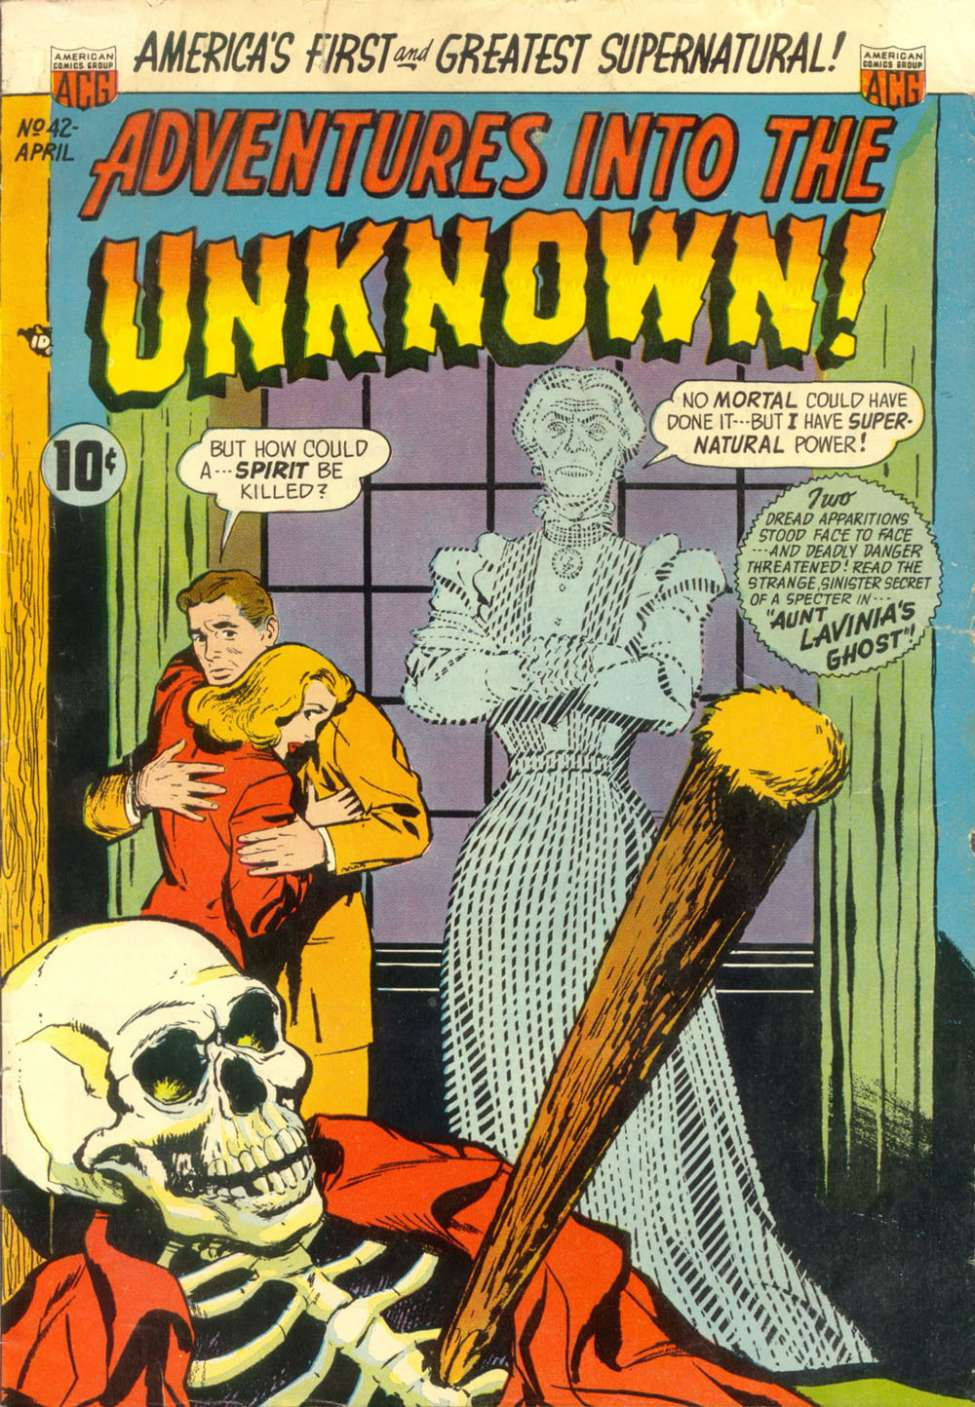 Adventures into the Unknown #42, ACG